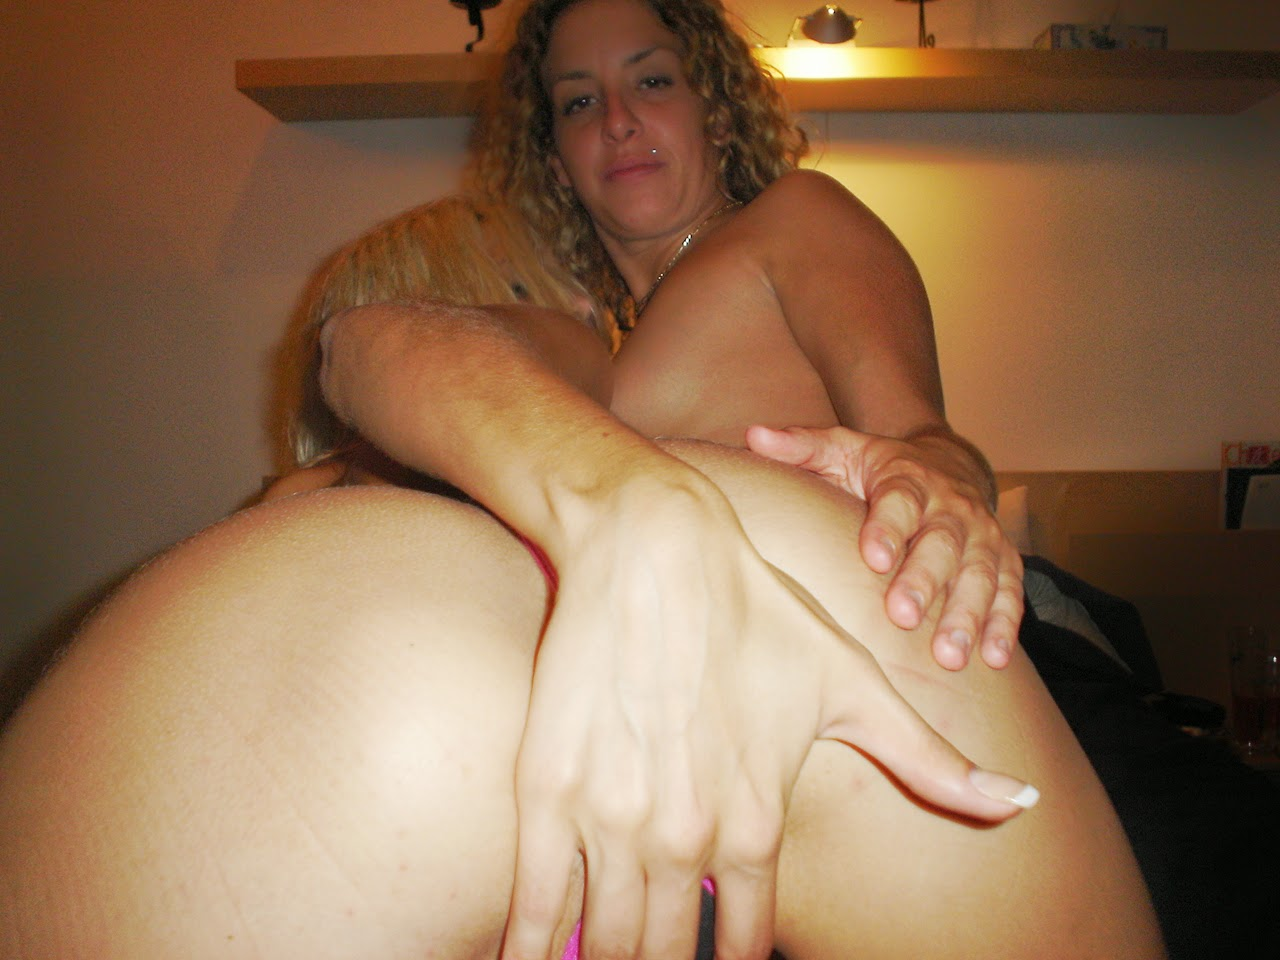 Family Nude Xxx intended for life of a lesbian family | masturbating photos